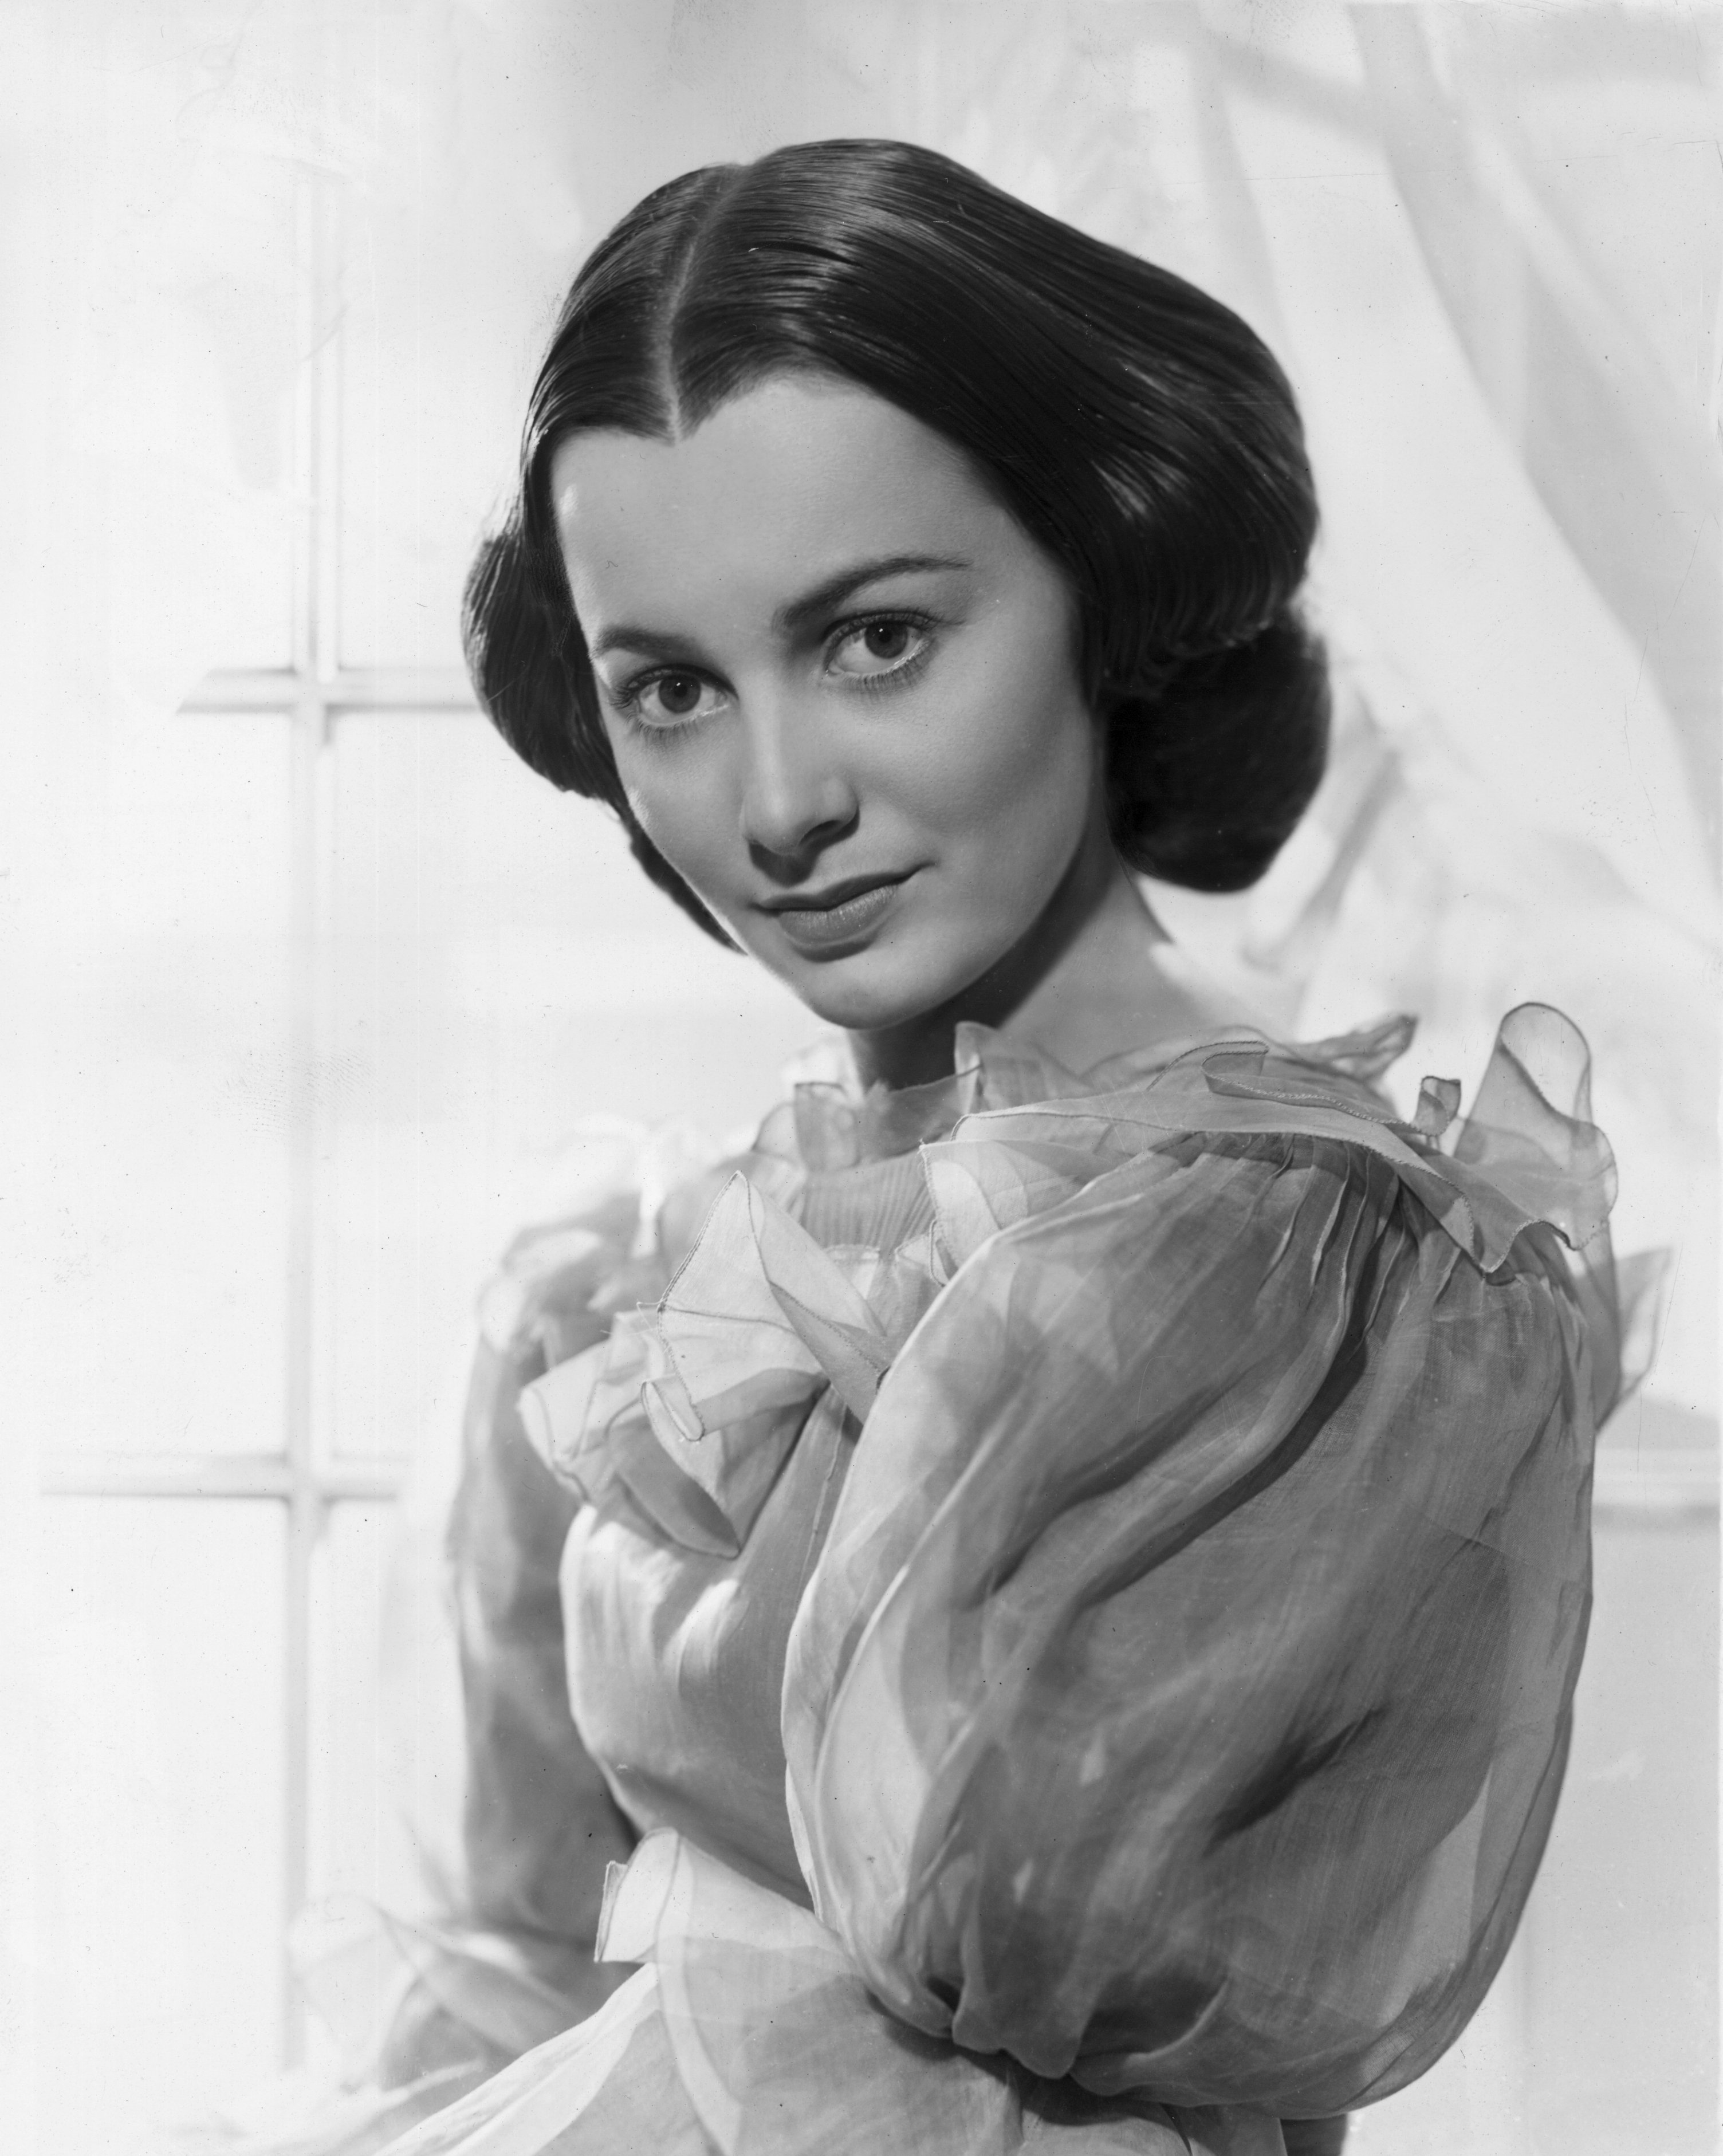 circa 1939: Promotional studio portrait of American actor Olivia de Havilland, standing in front of a window in a promotional portrait for 'Gone With The Wind'. She wears a gown, with her hair parted and pulled back. | Source: Getty Images